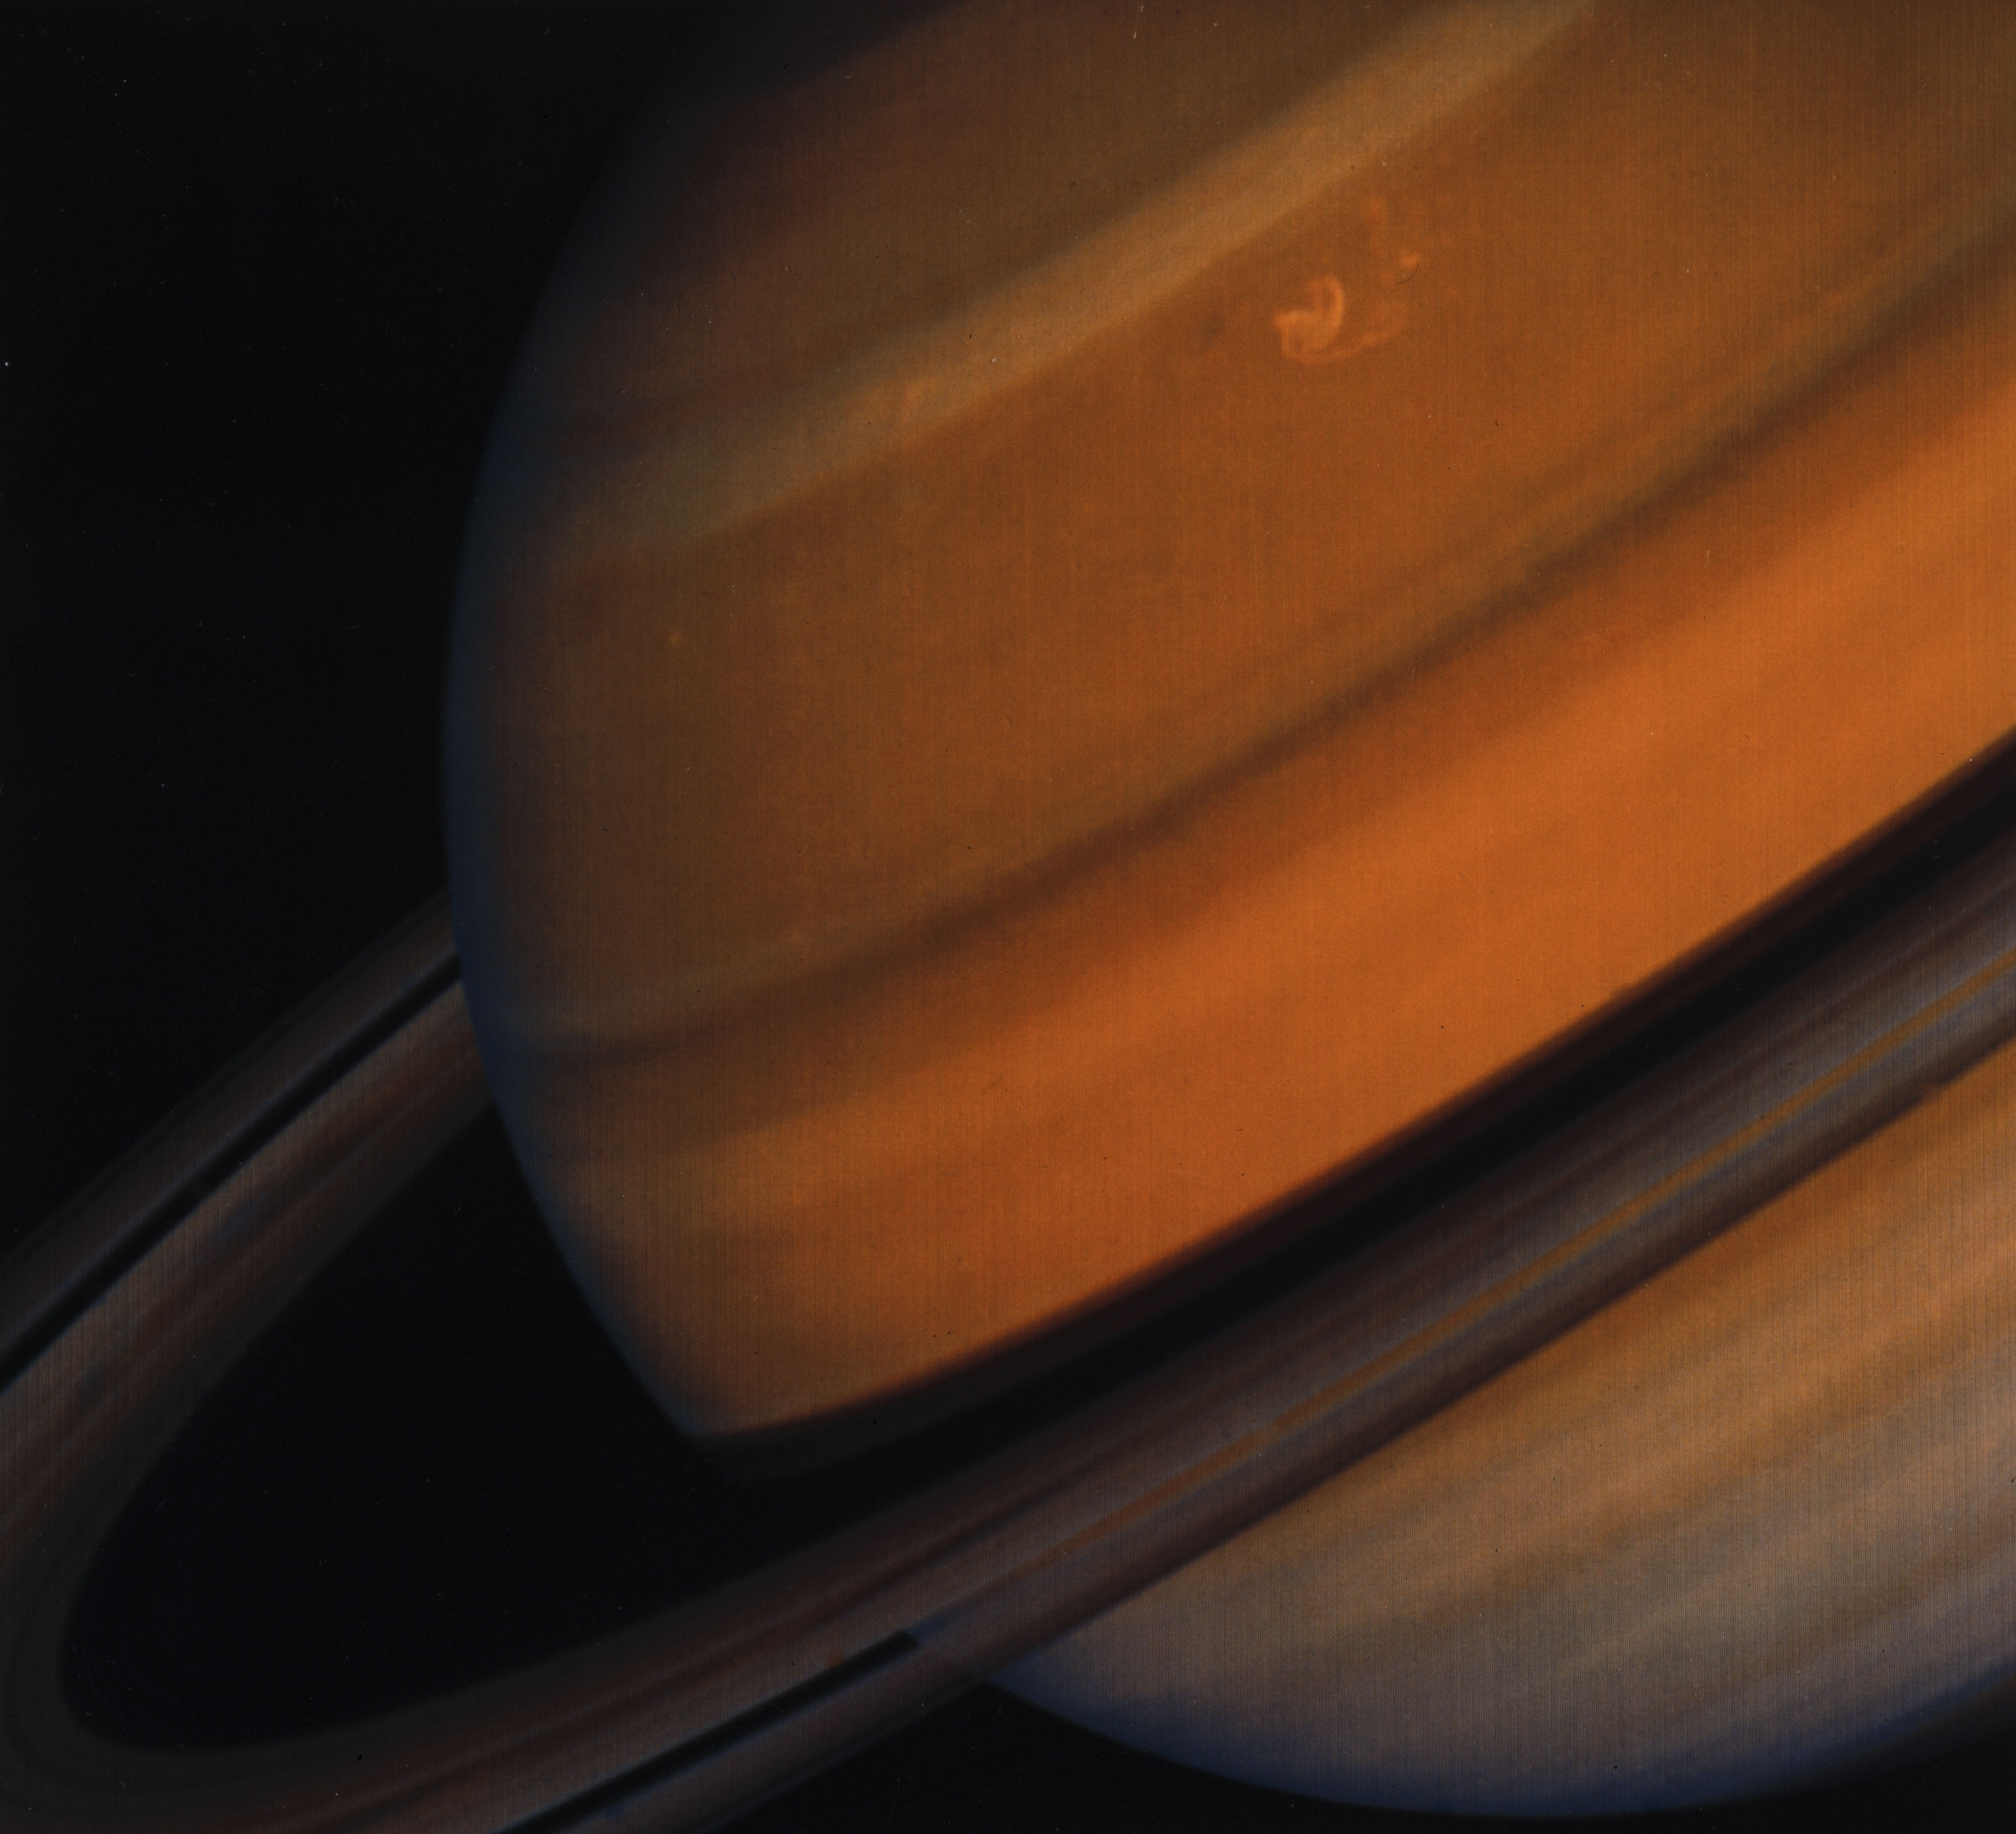 The clear ring structure of Saturn can be seen in this image taken form the Voyager 2 spacecraft on Jan. 1. 1981.